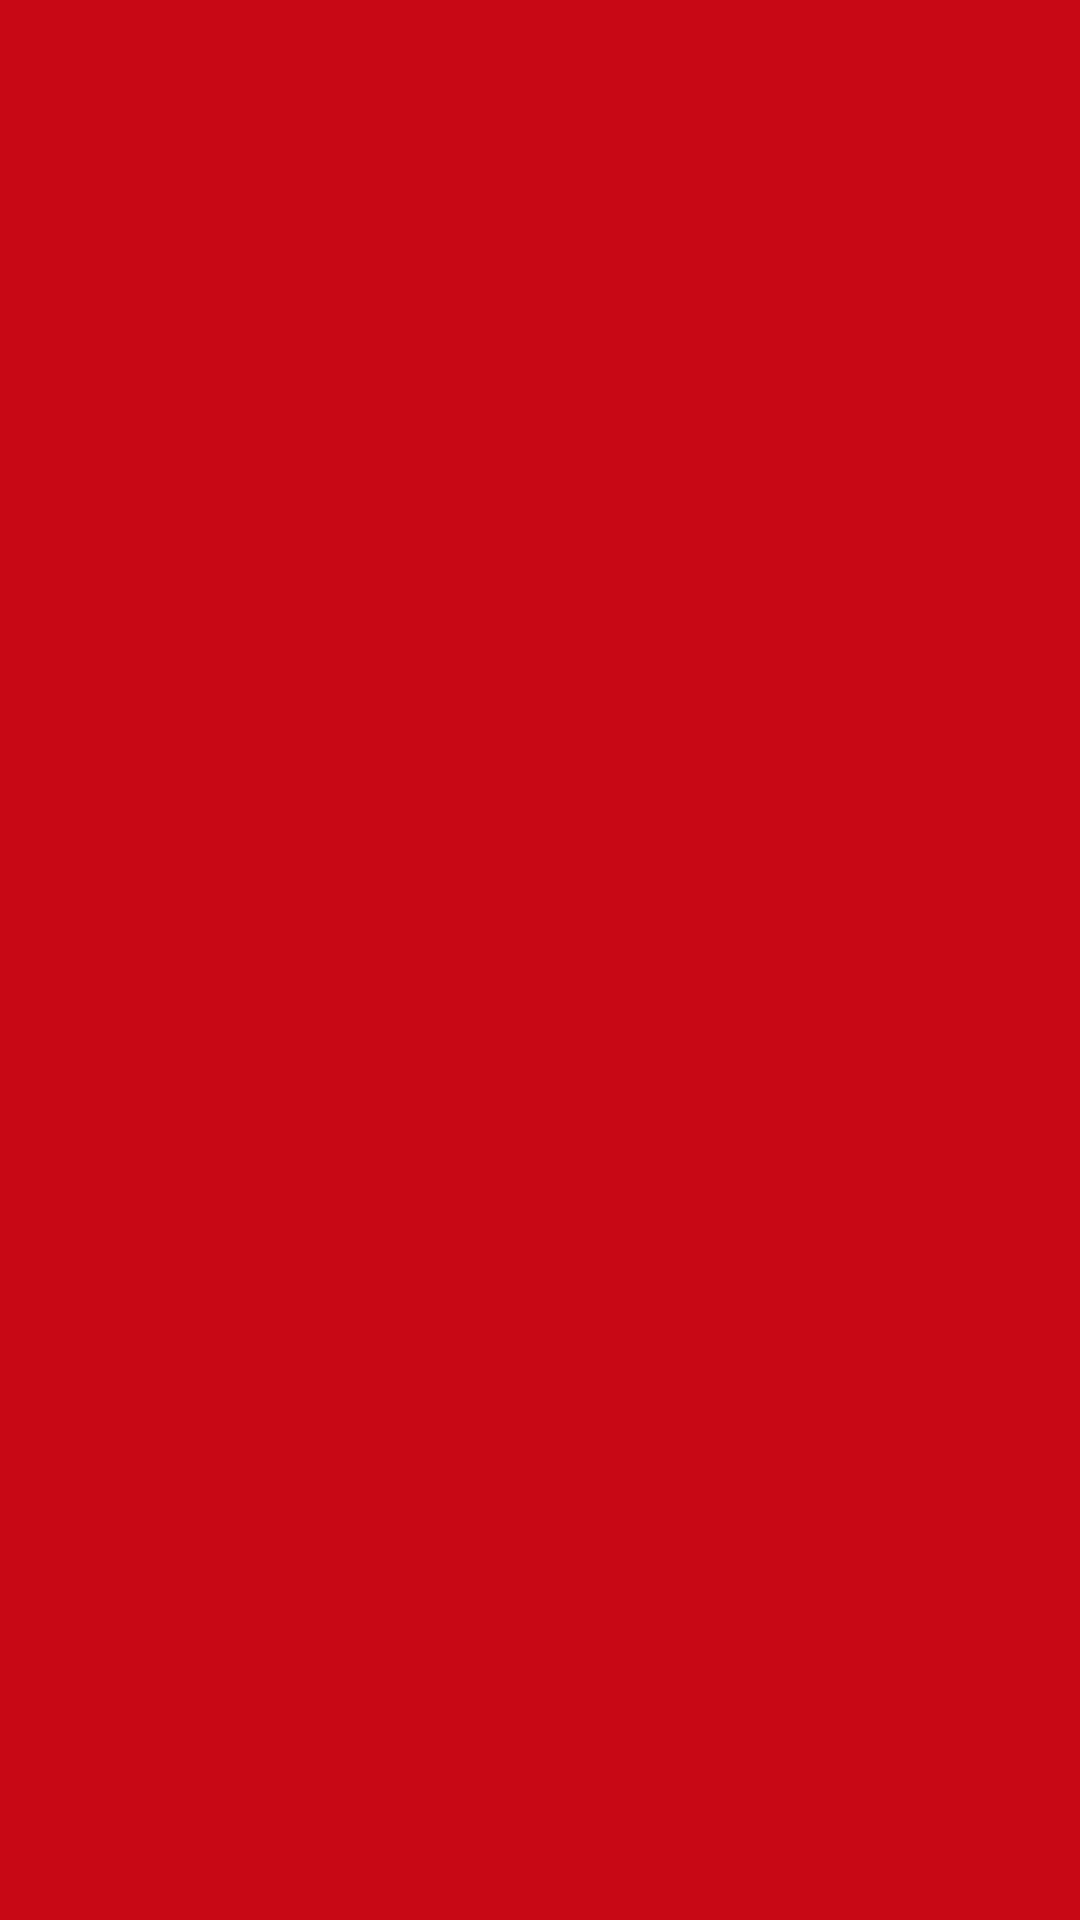 1080x1920 Venetian Red Solid Color Background